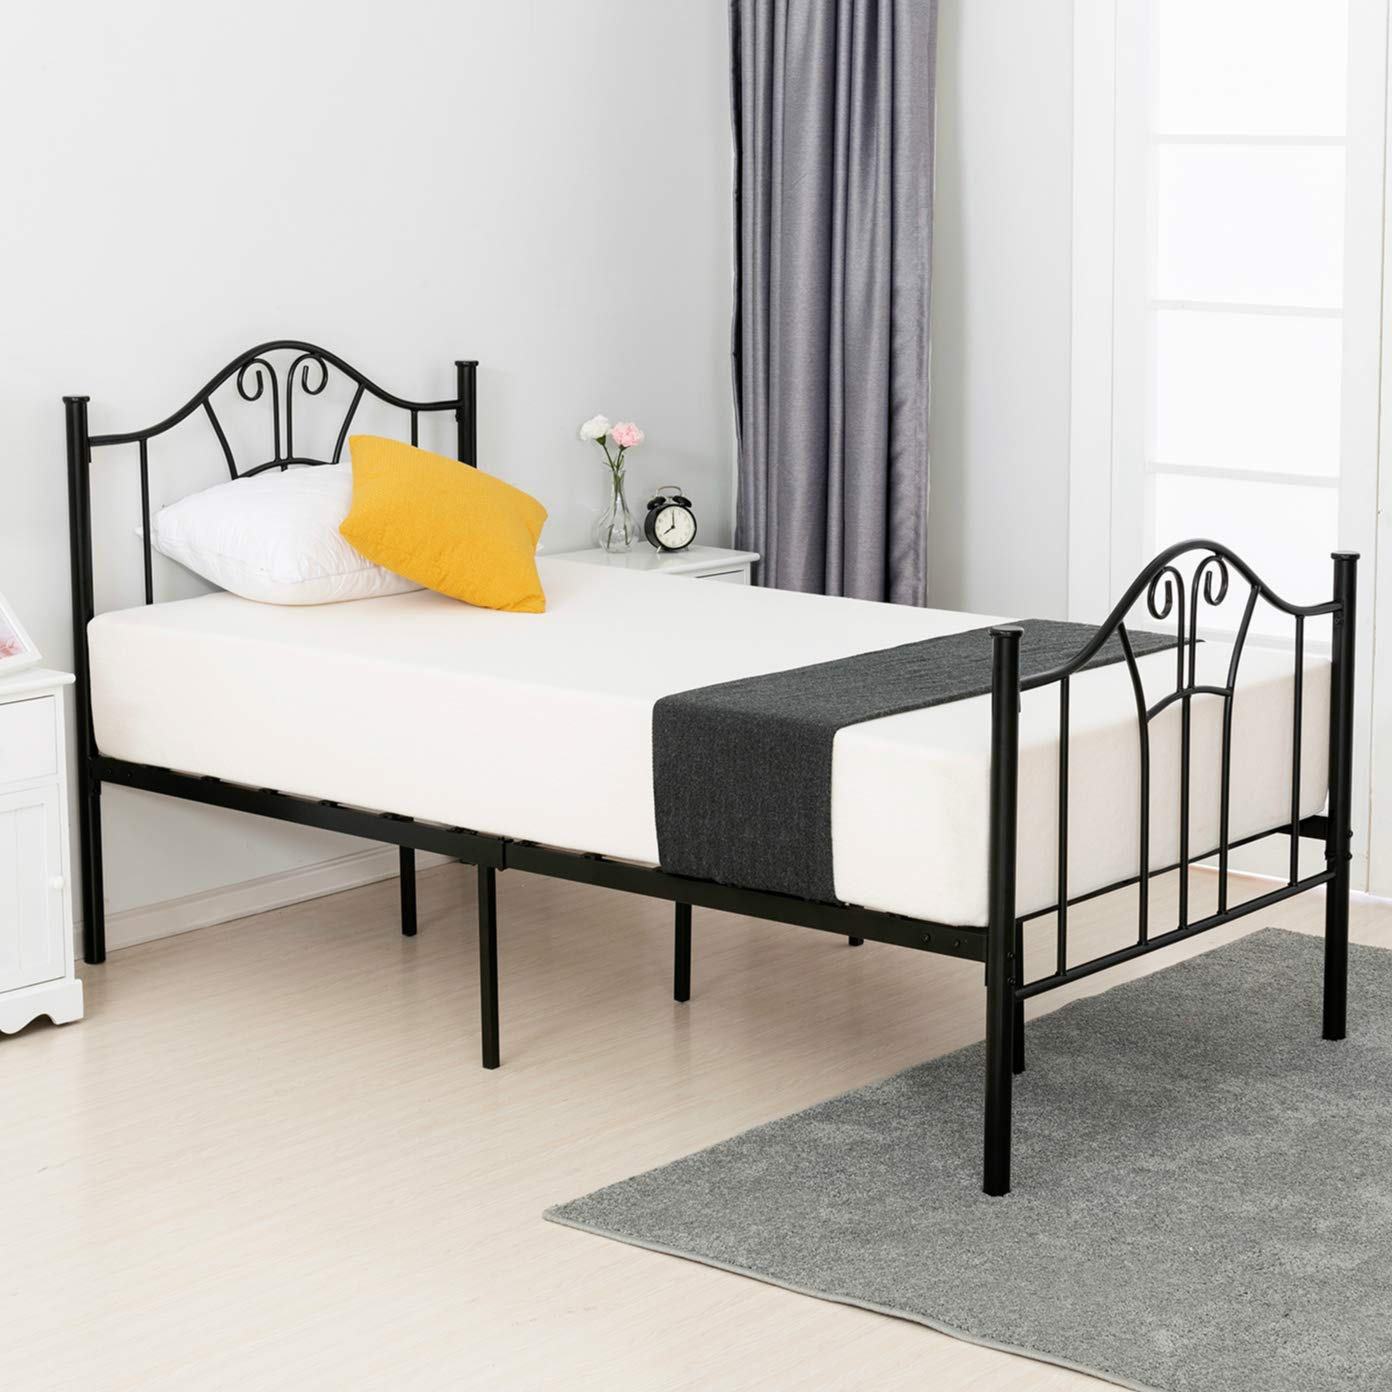 mecor Metal Twin XL Bed Frame, Platform Bed with Curved Steel Headboard Footboard, with Durable Metal Slat Support,No Box Spring Needed, Twin XL Size, Black